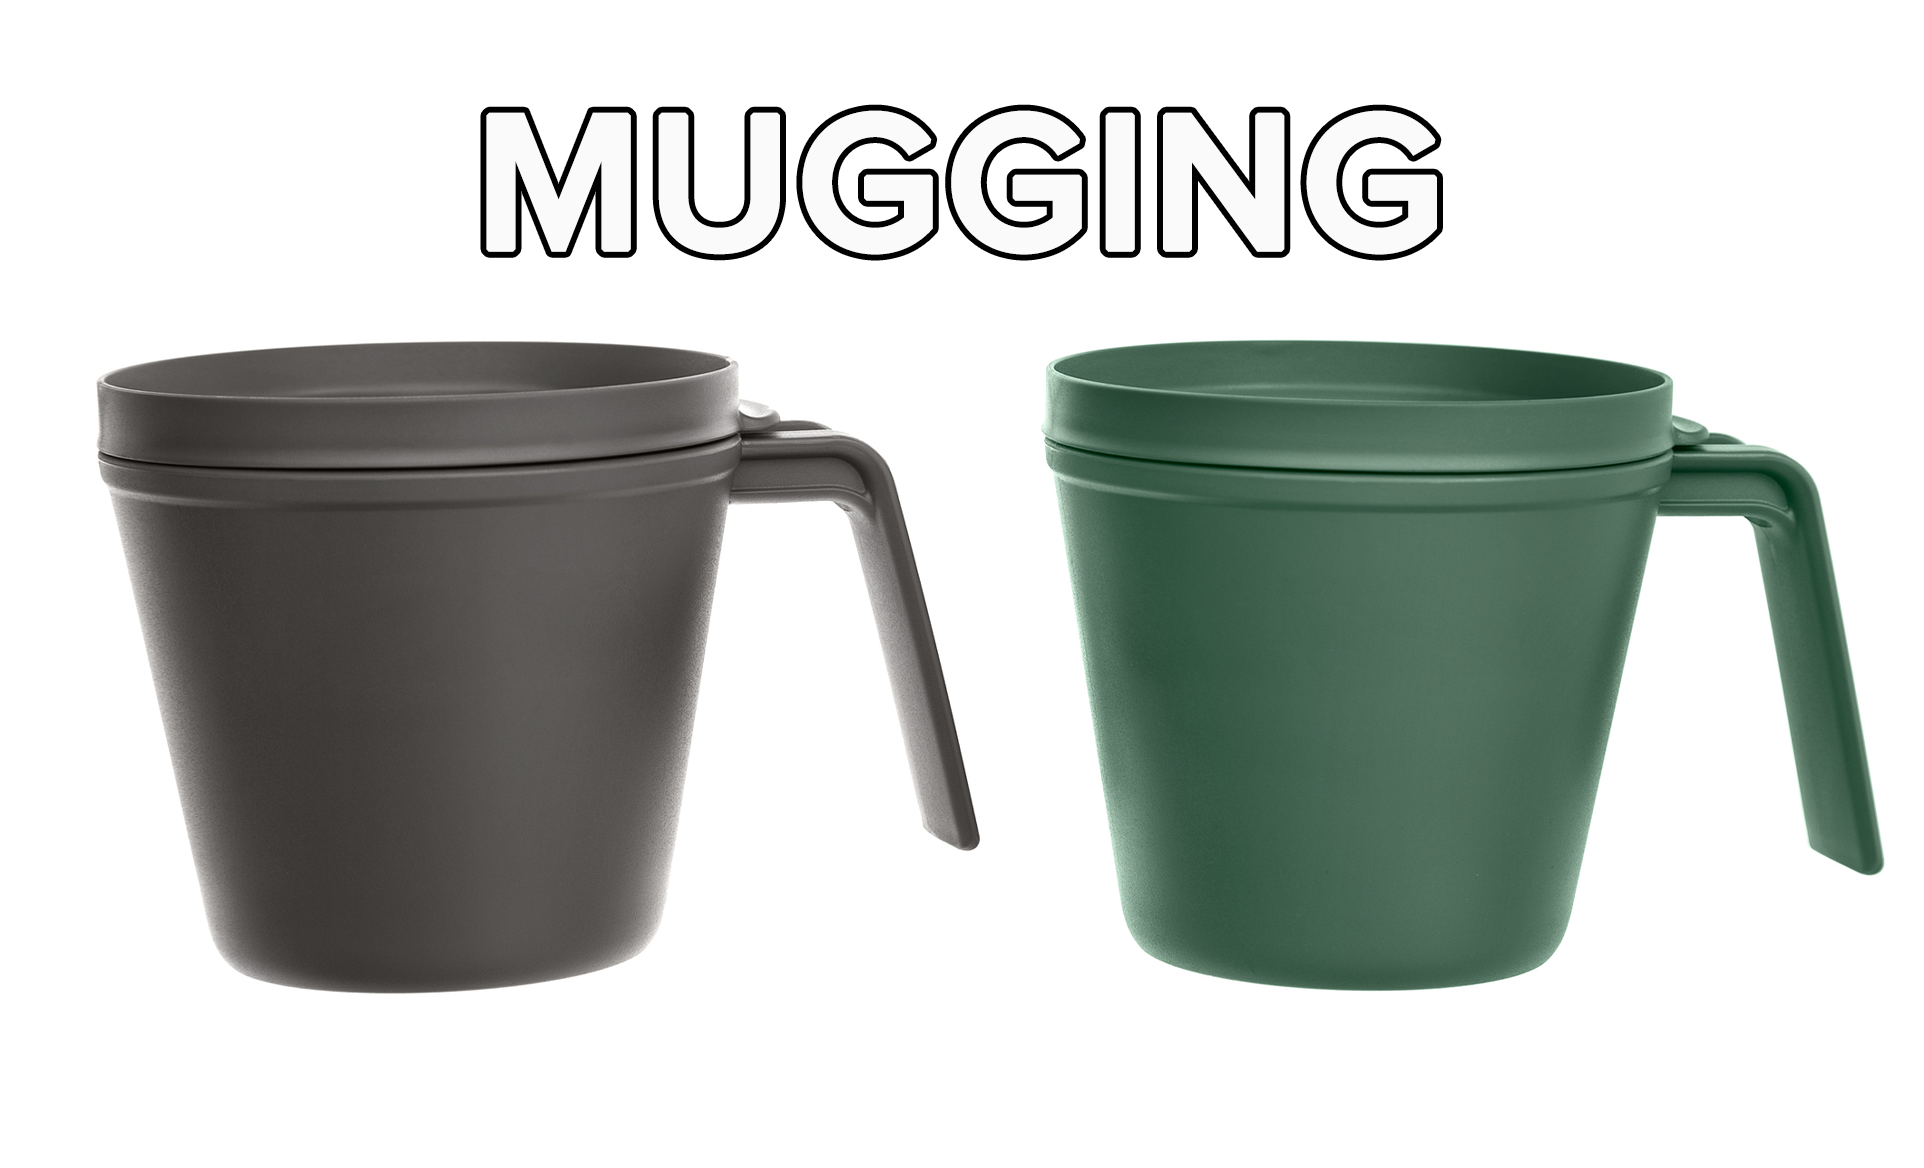 Two mugs that are used to water plants